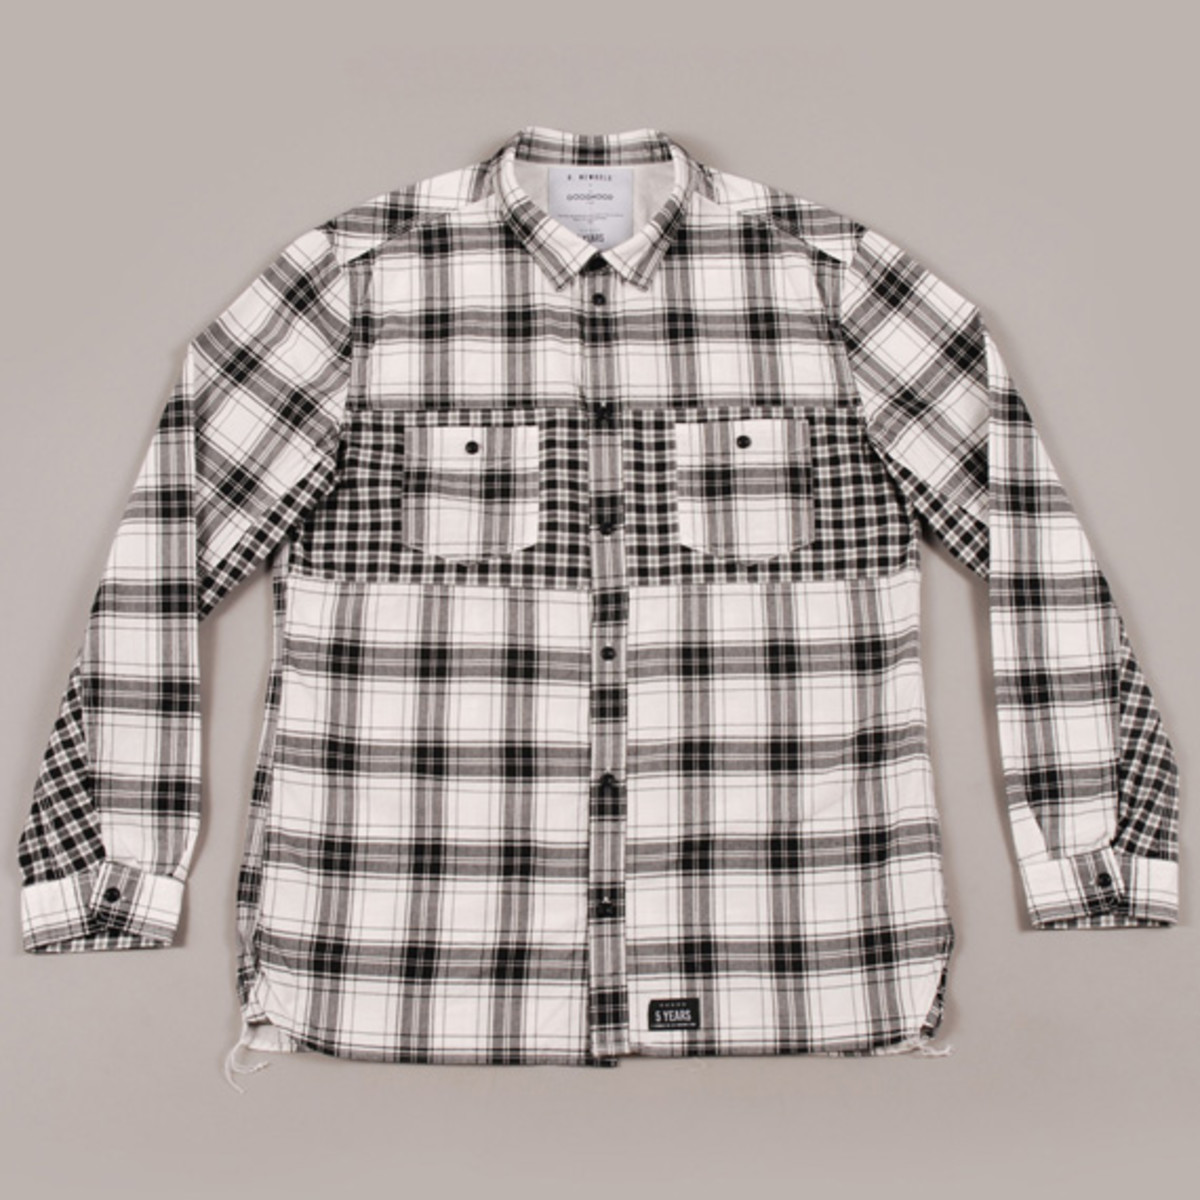 r.newbold-goodhood-5th-anniversary-collection-02